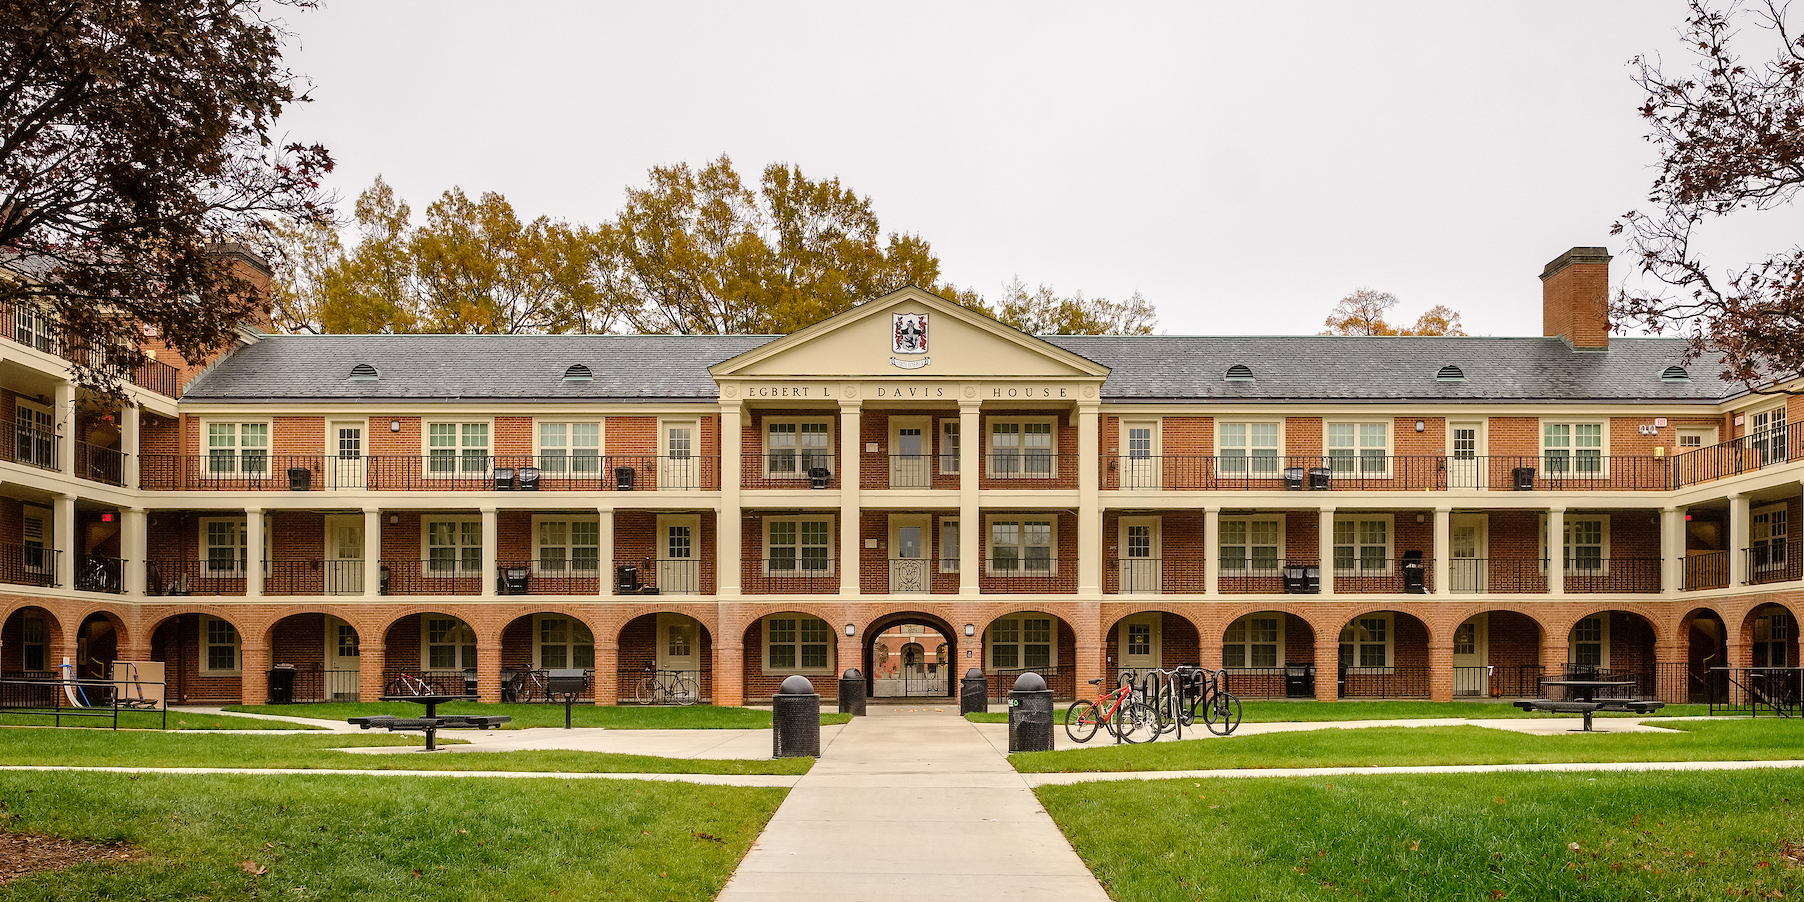 Davis residence hall courtyard